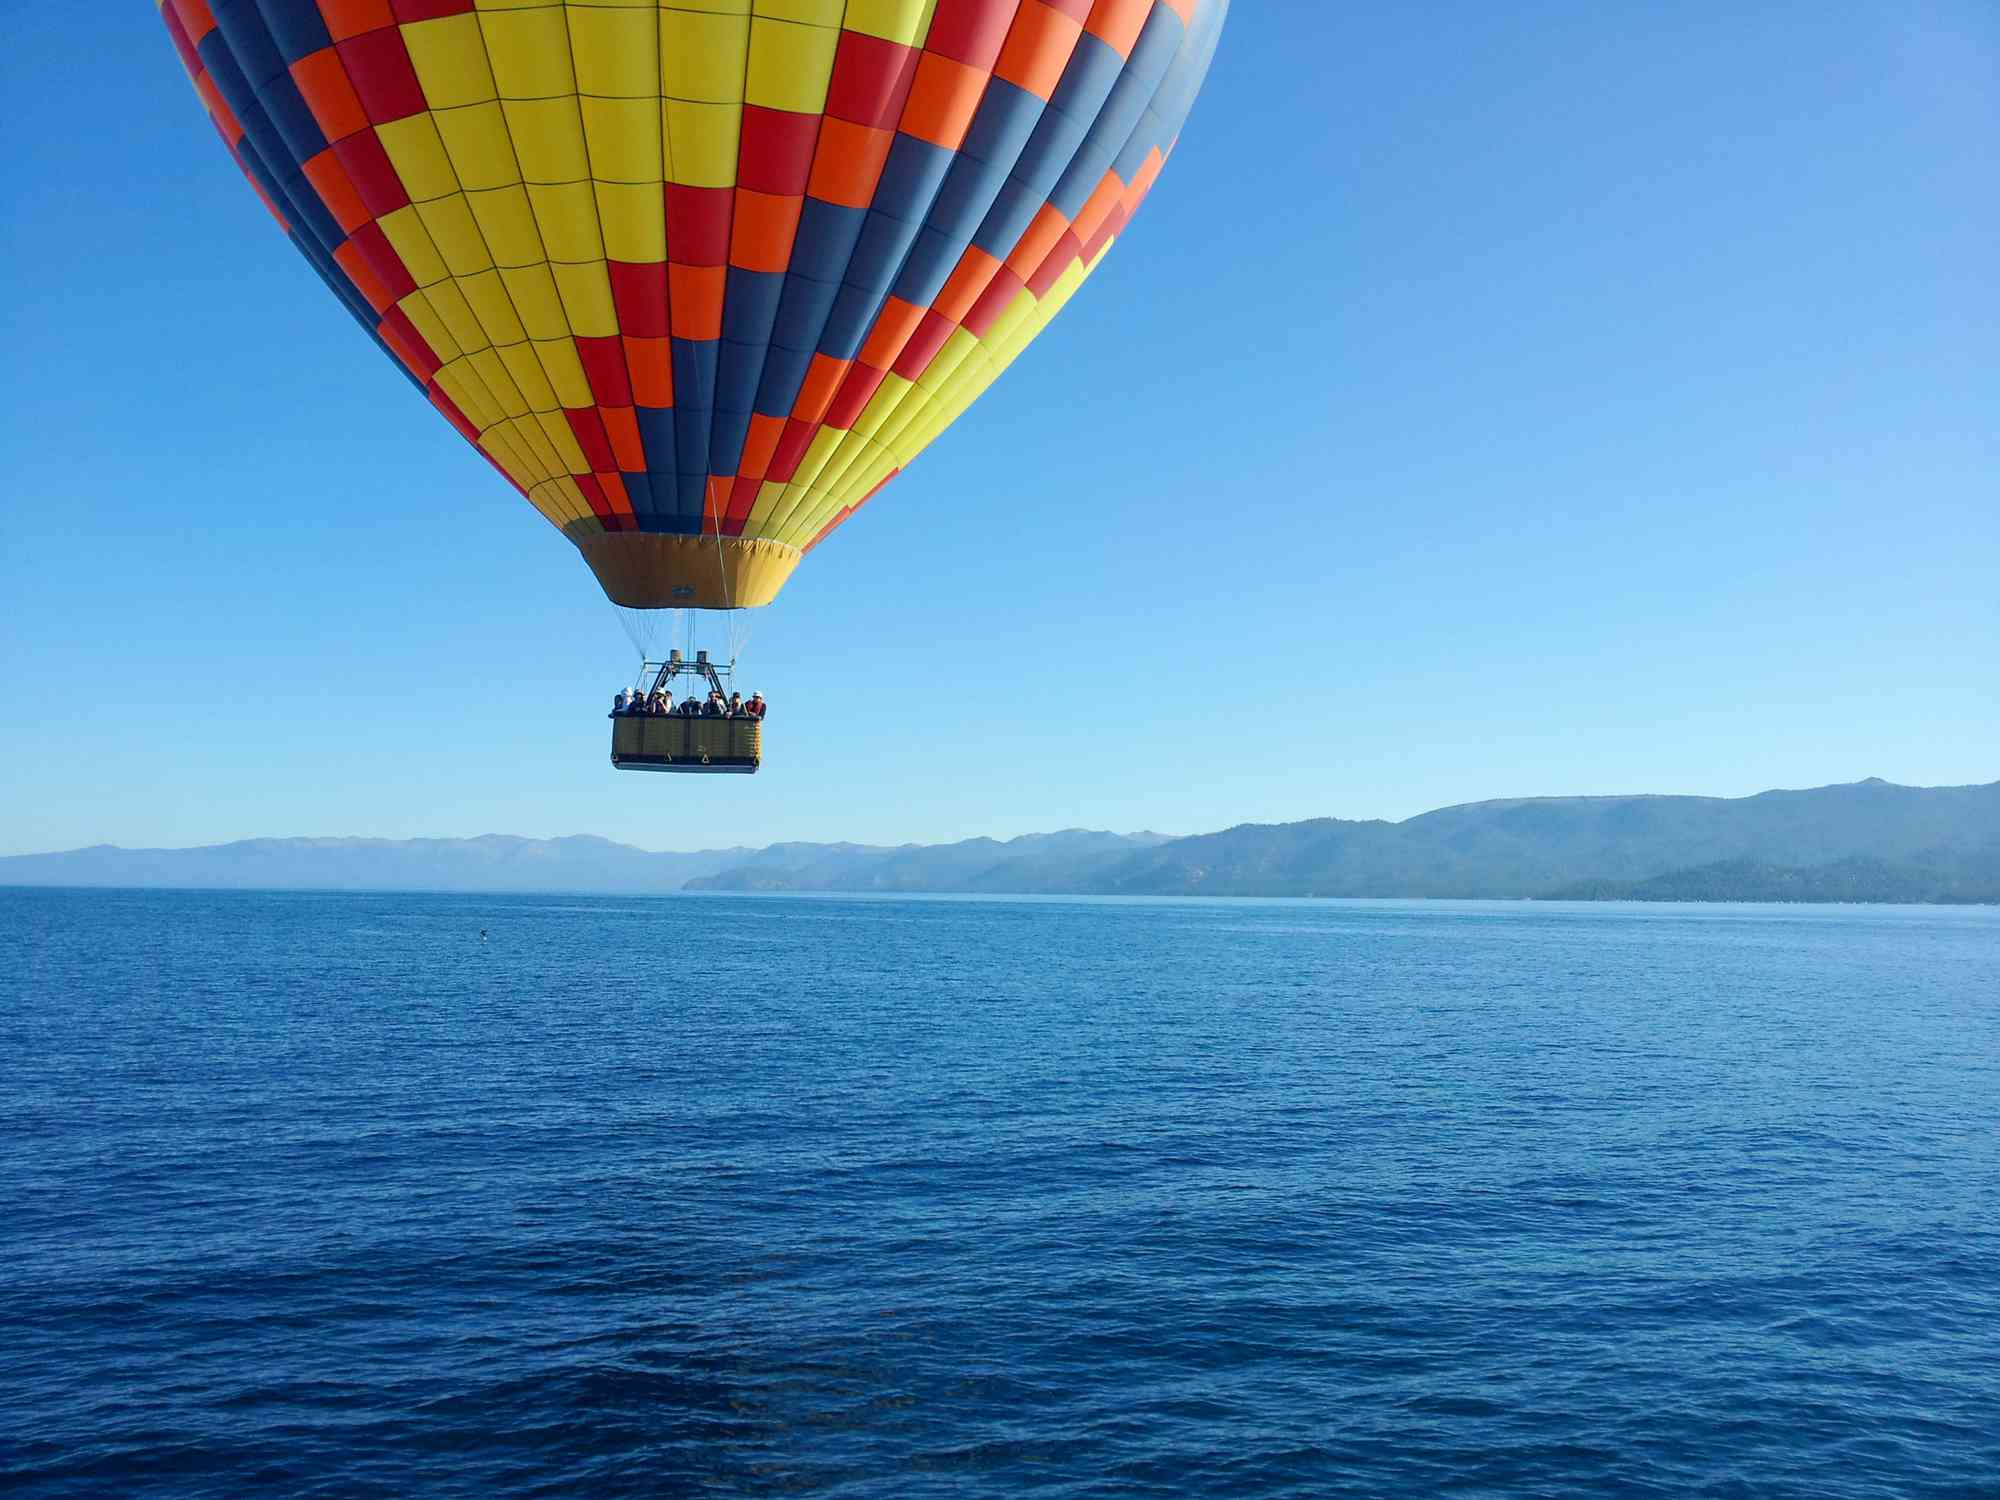 A colorful hot air balloon floating above Lake Tahoe in California